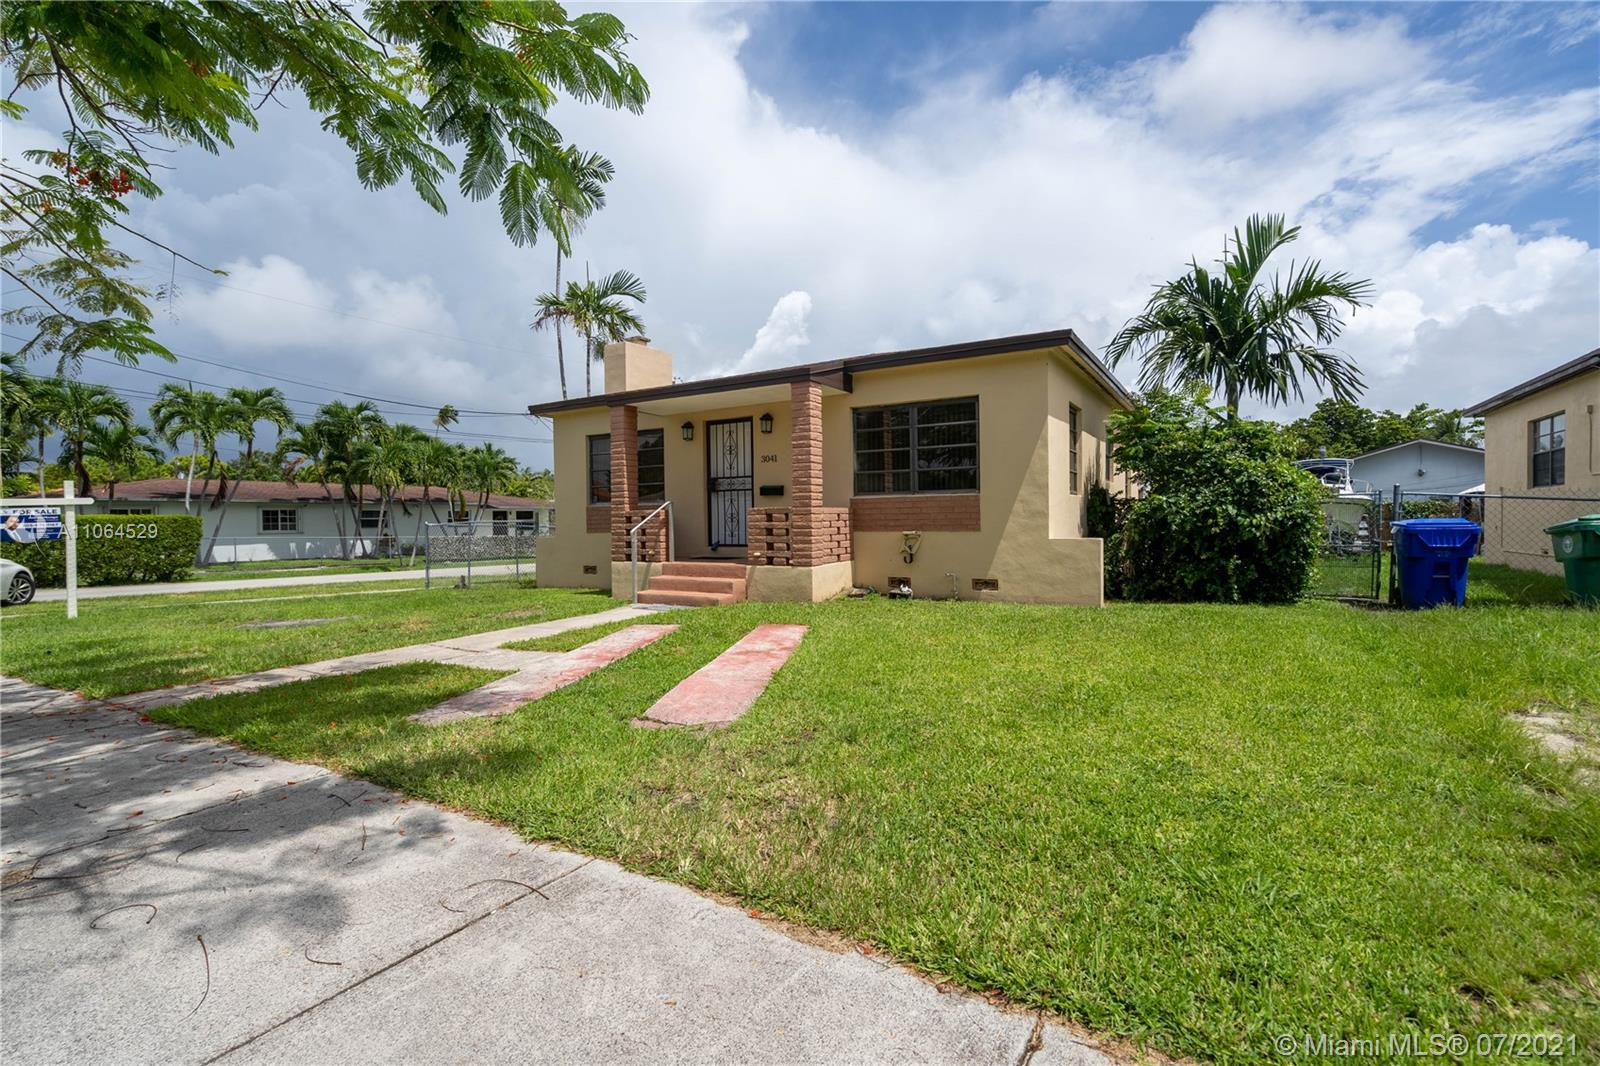 Great starter home for family that rather not deal with an association. Cozy 2/1 corner house with a nice size backyard to have family BBQ or fit a boat. Extremely convenient for any boat owner, only 5 mins away from the marina. Located in a quiet neighborhood but still remarkably close to all the entertainment like Downtown, Brickell, Coconut Grove, and the Beach. Can also be an investors dream! Two properties right next to each other both in T3 zone with many 2 story duplexes that are being built in the neighborhood the other property address is 3031 SW 27 AVE. Prime location for air bnb.